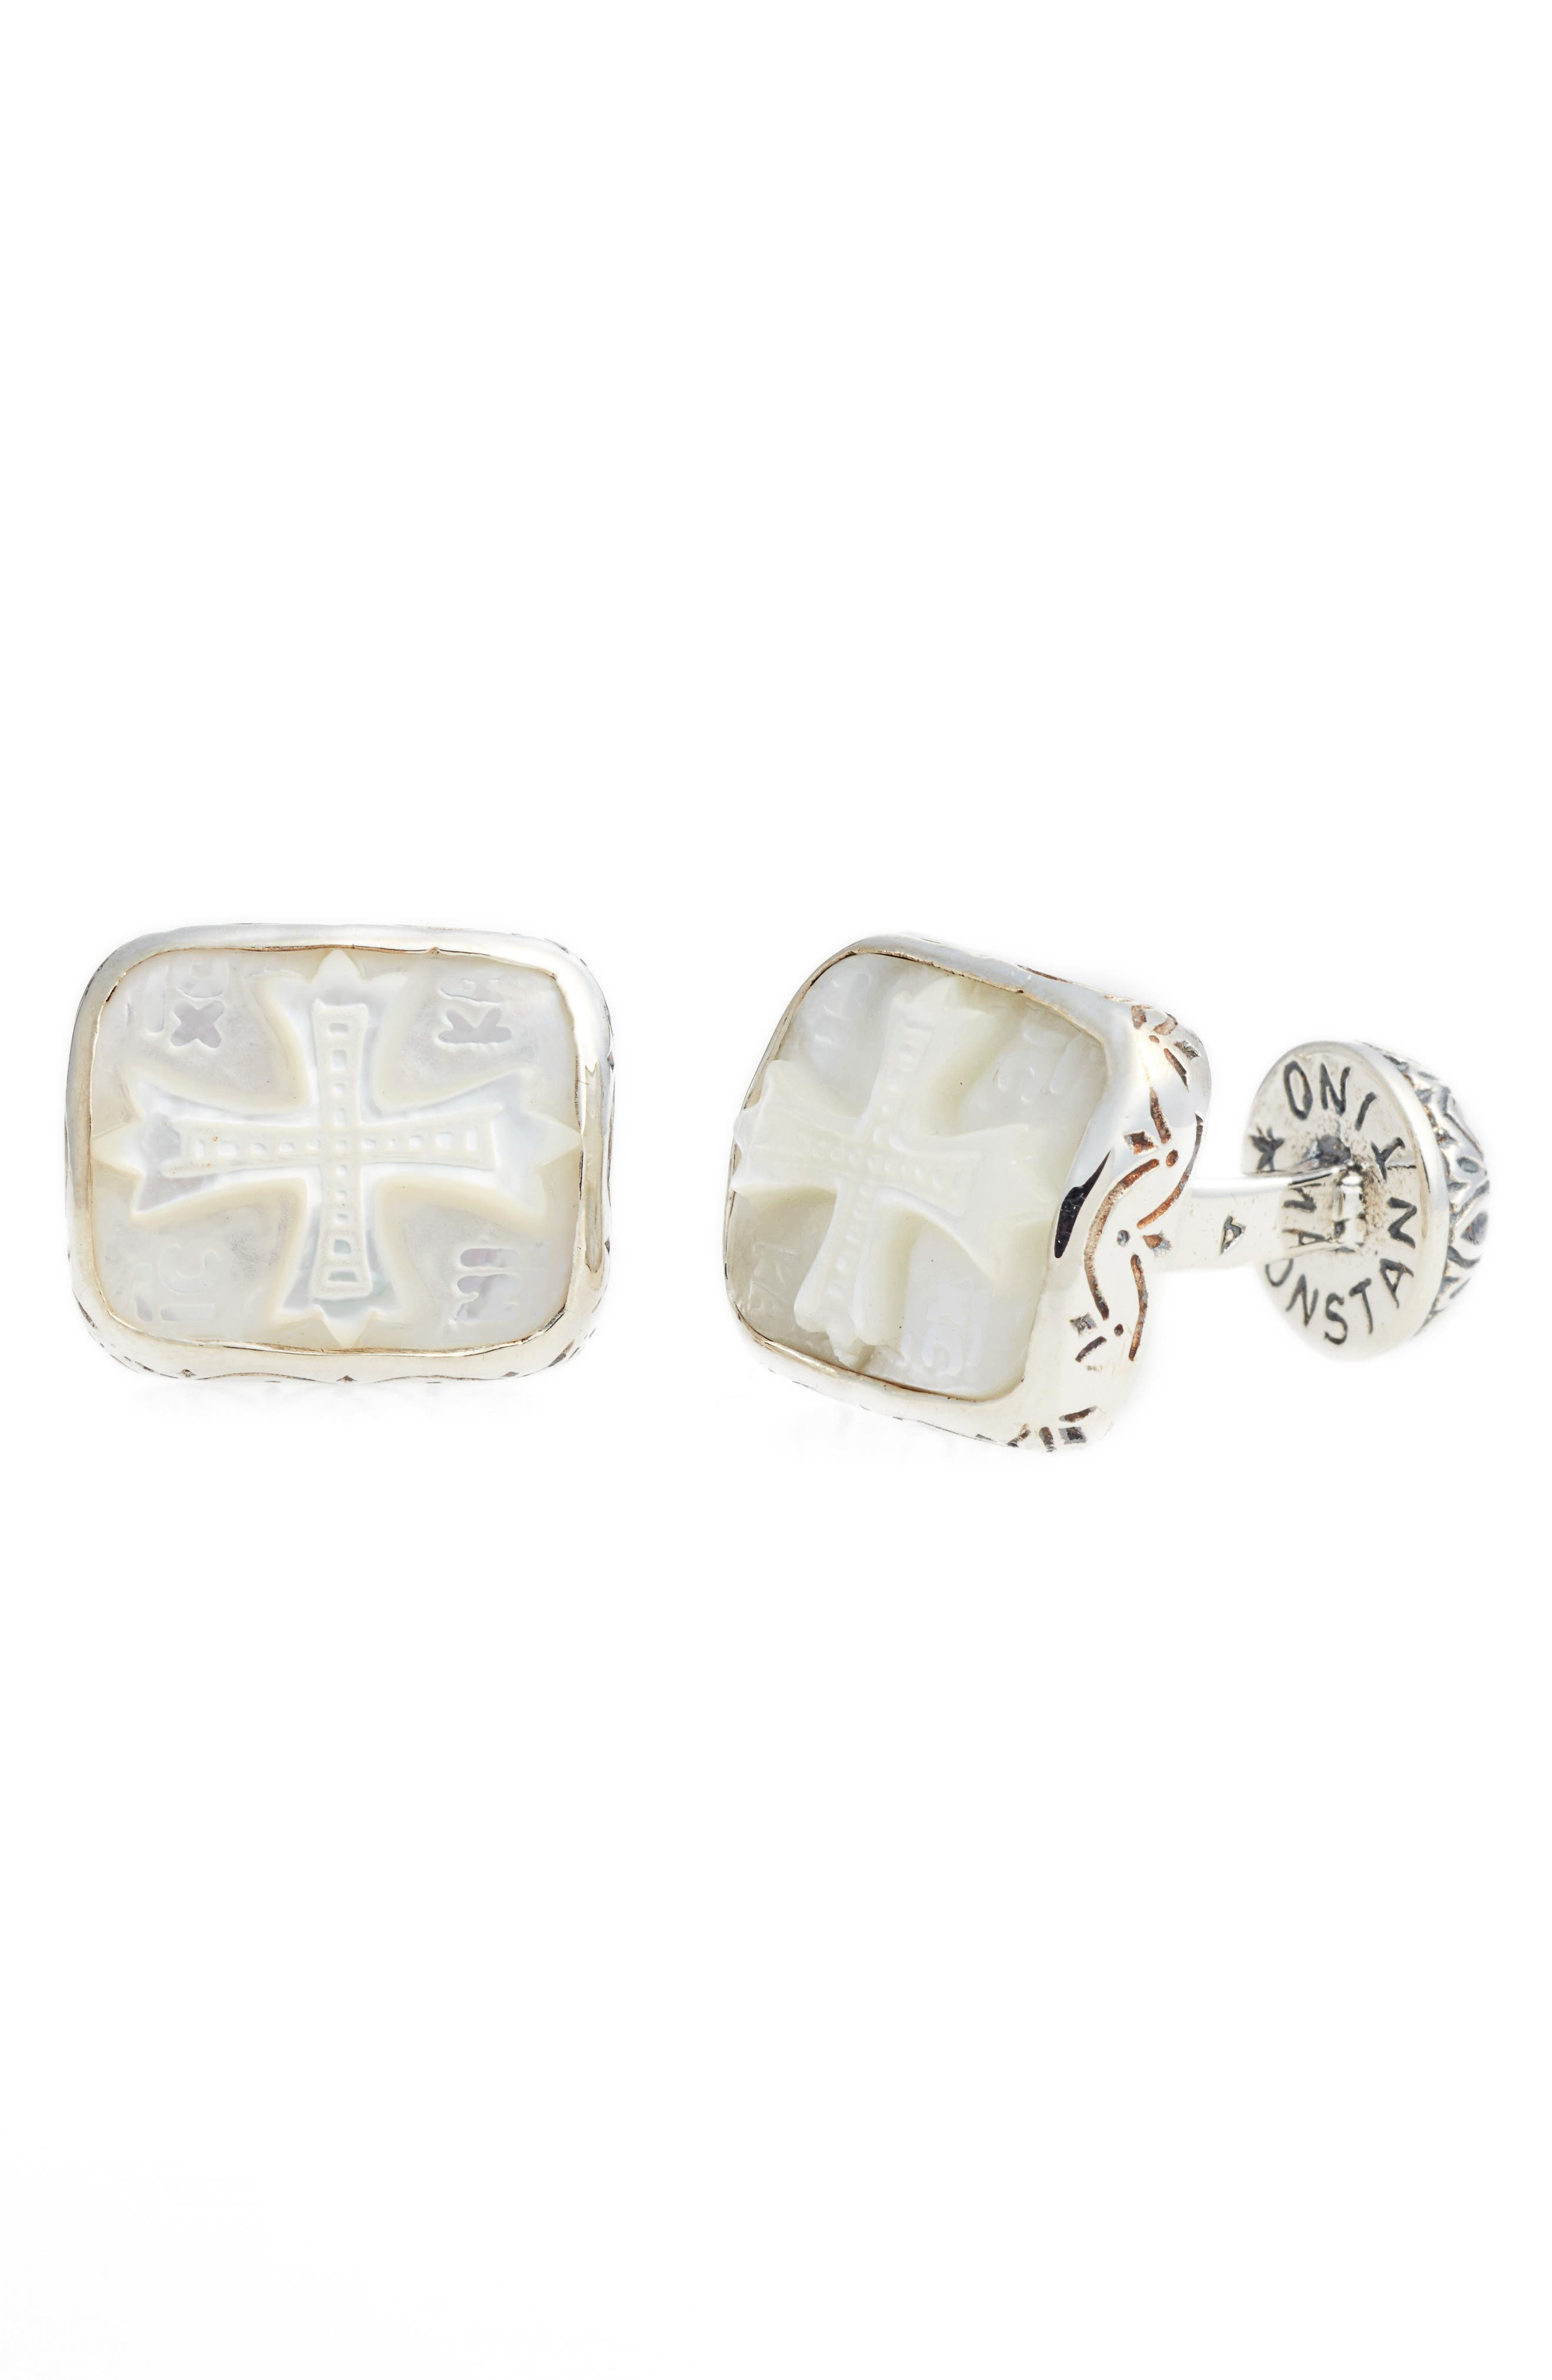 Color Classics Cuff Links,                         Main,                         color, Silver/ Mother Of Pearl